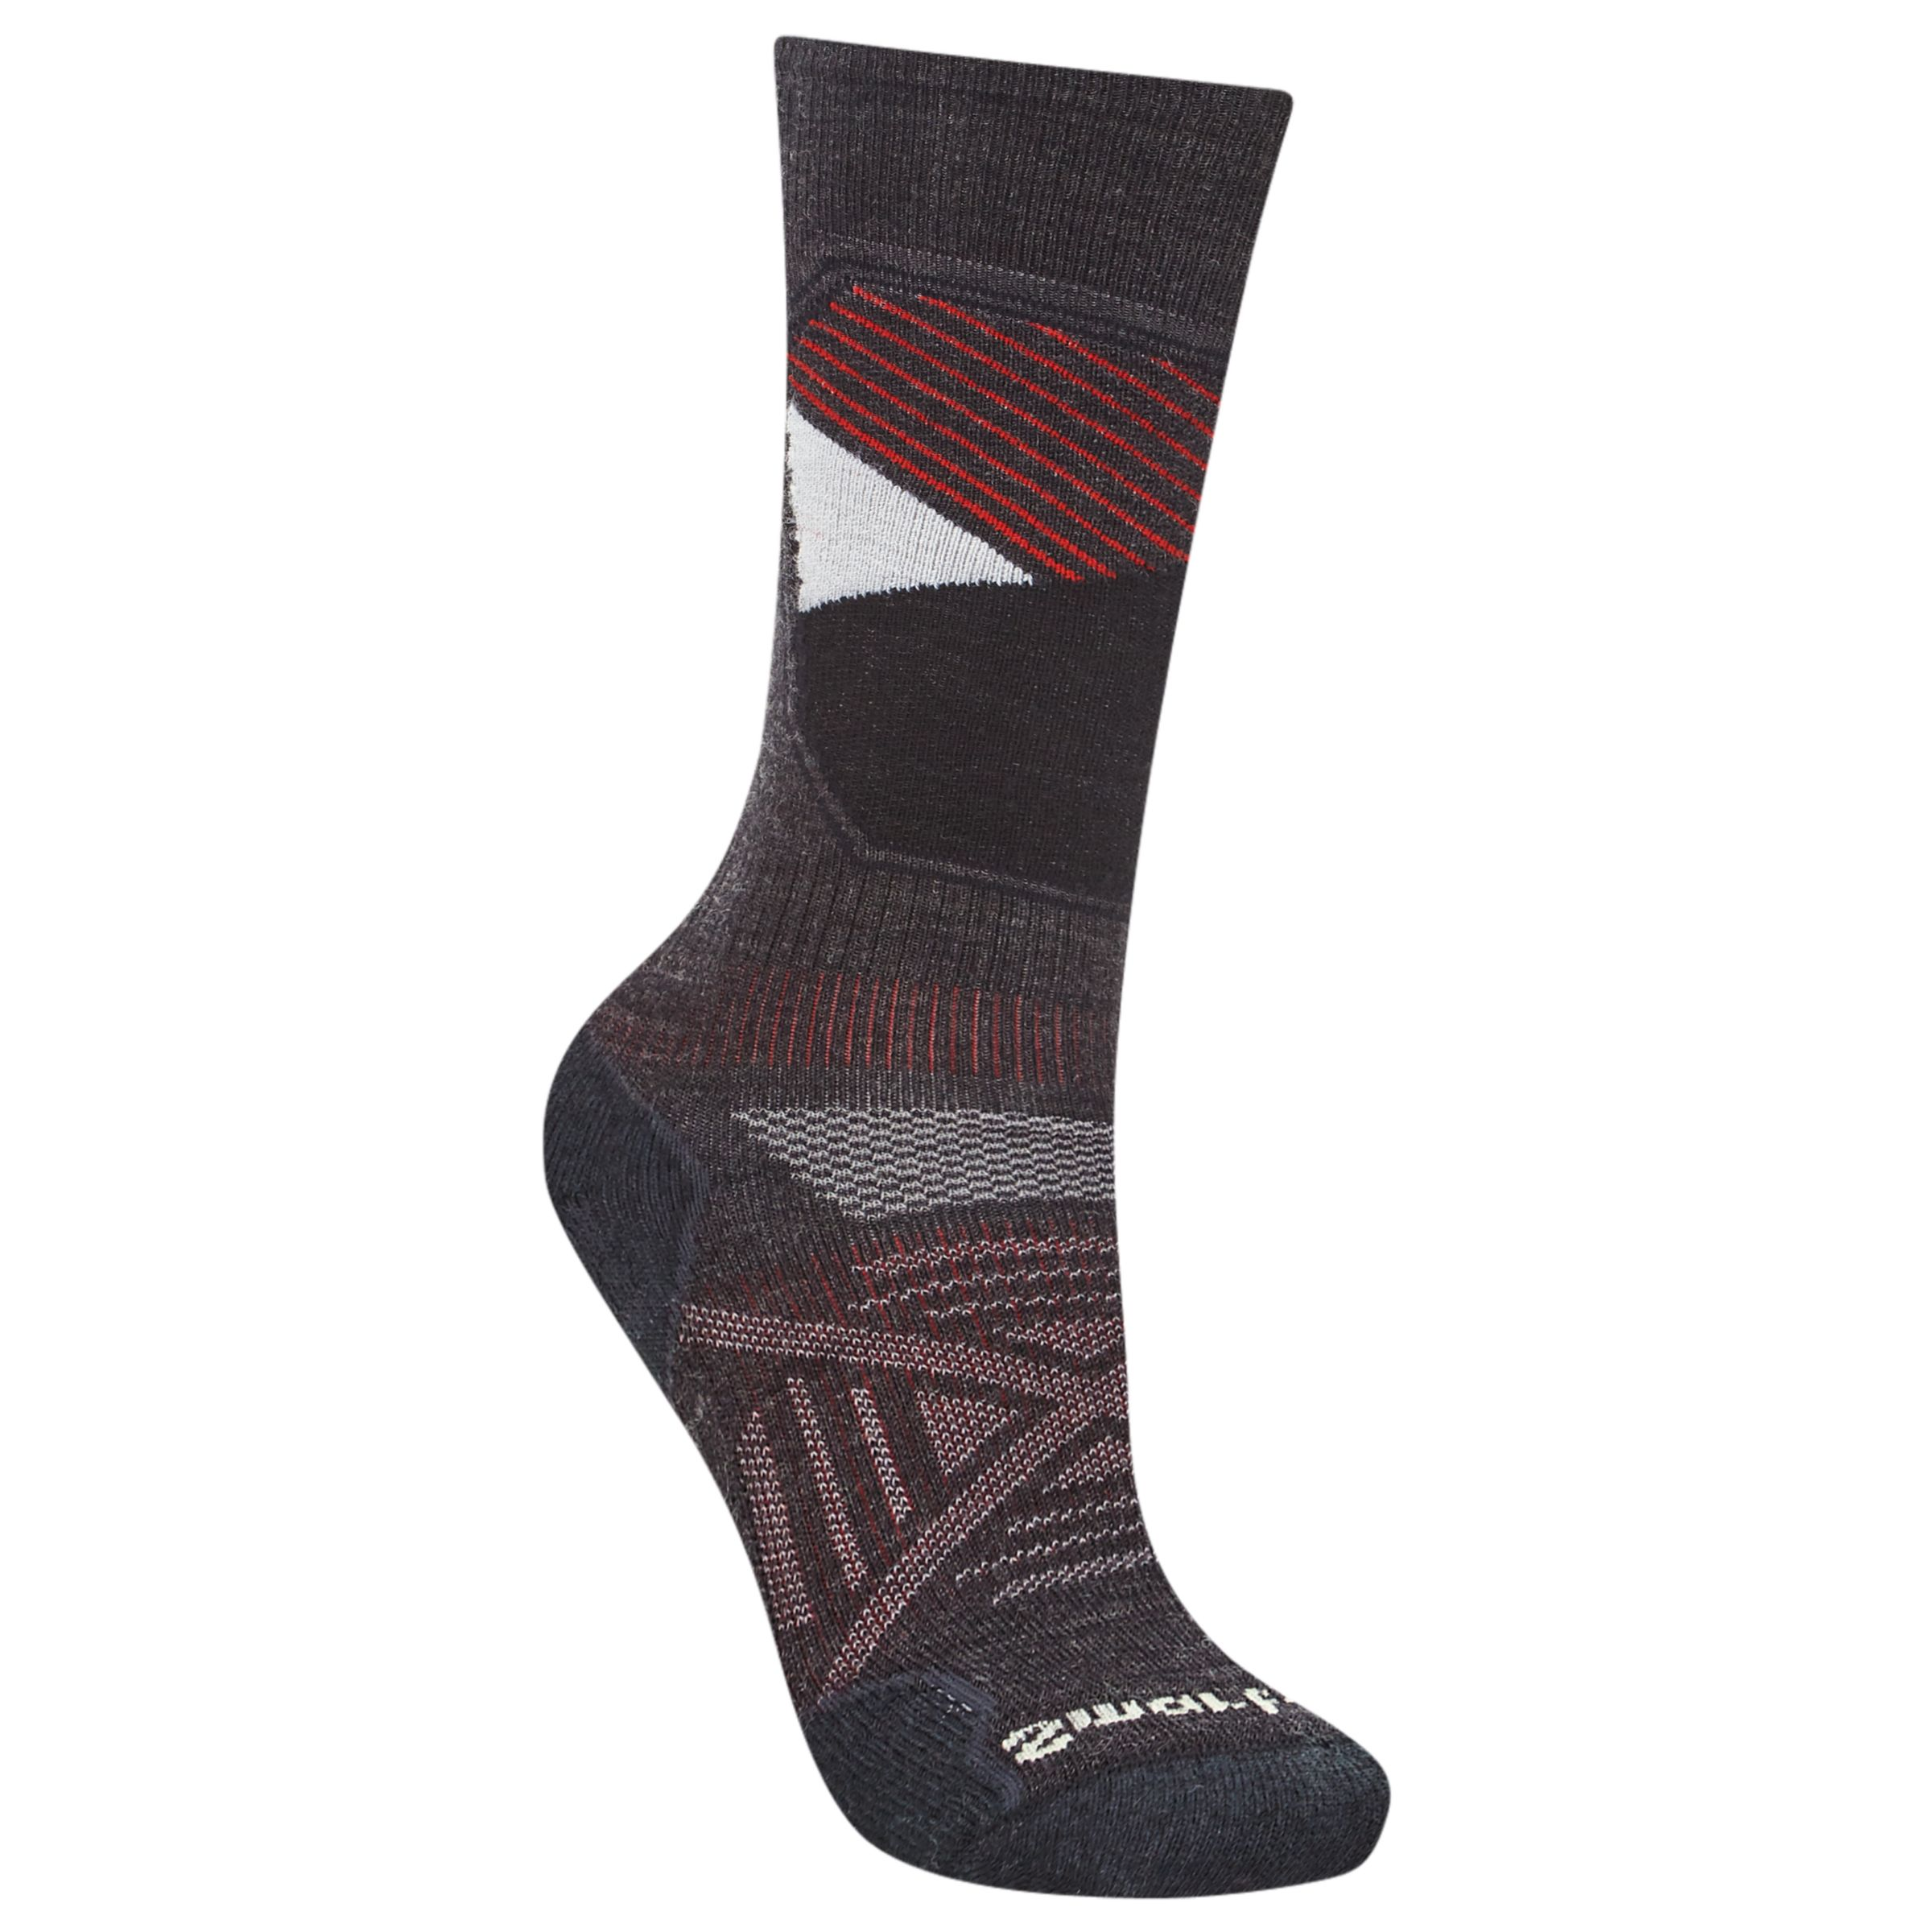 Smartwool SmartWool PhD Ski Men's Light Pattern Socks, Charcoal/Multi